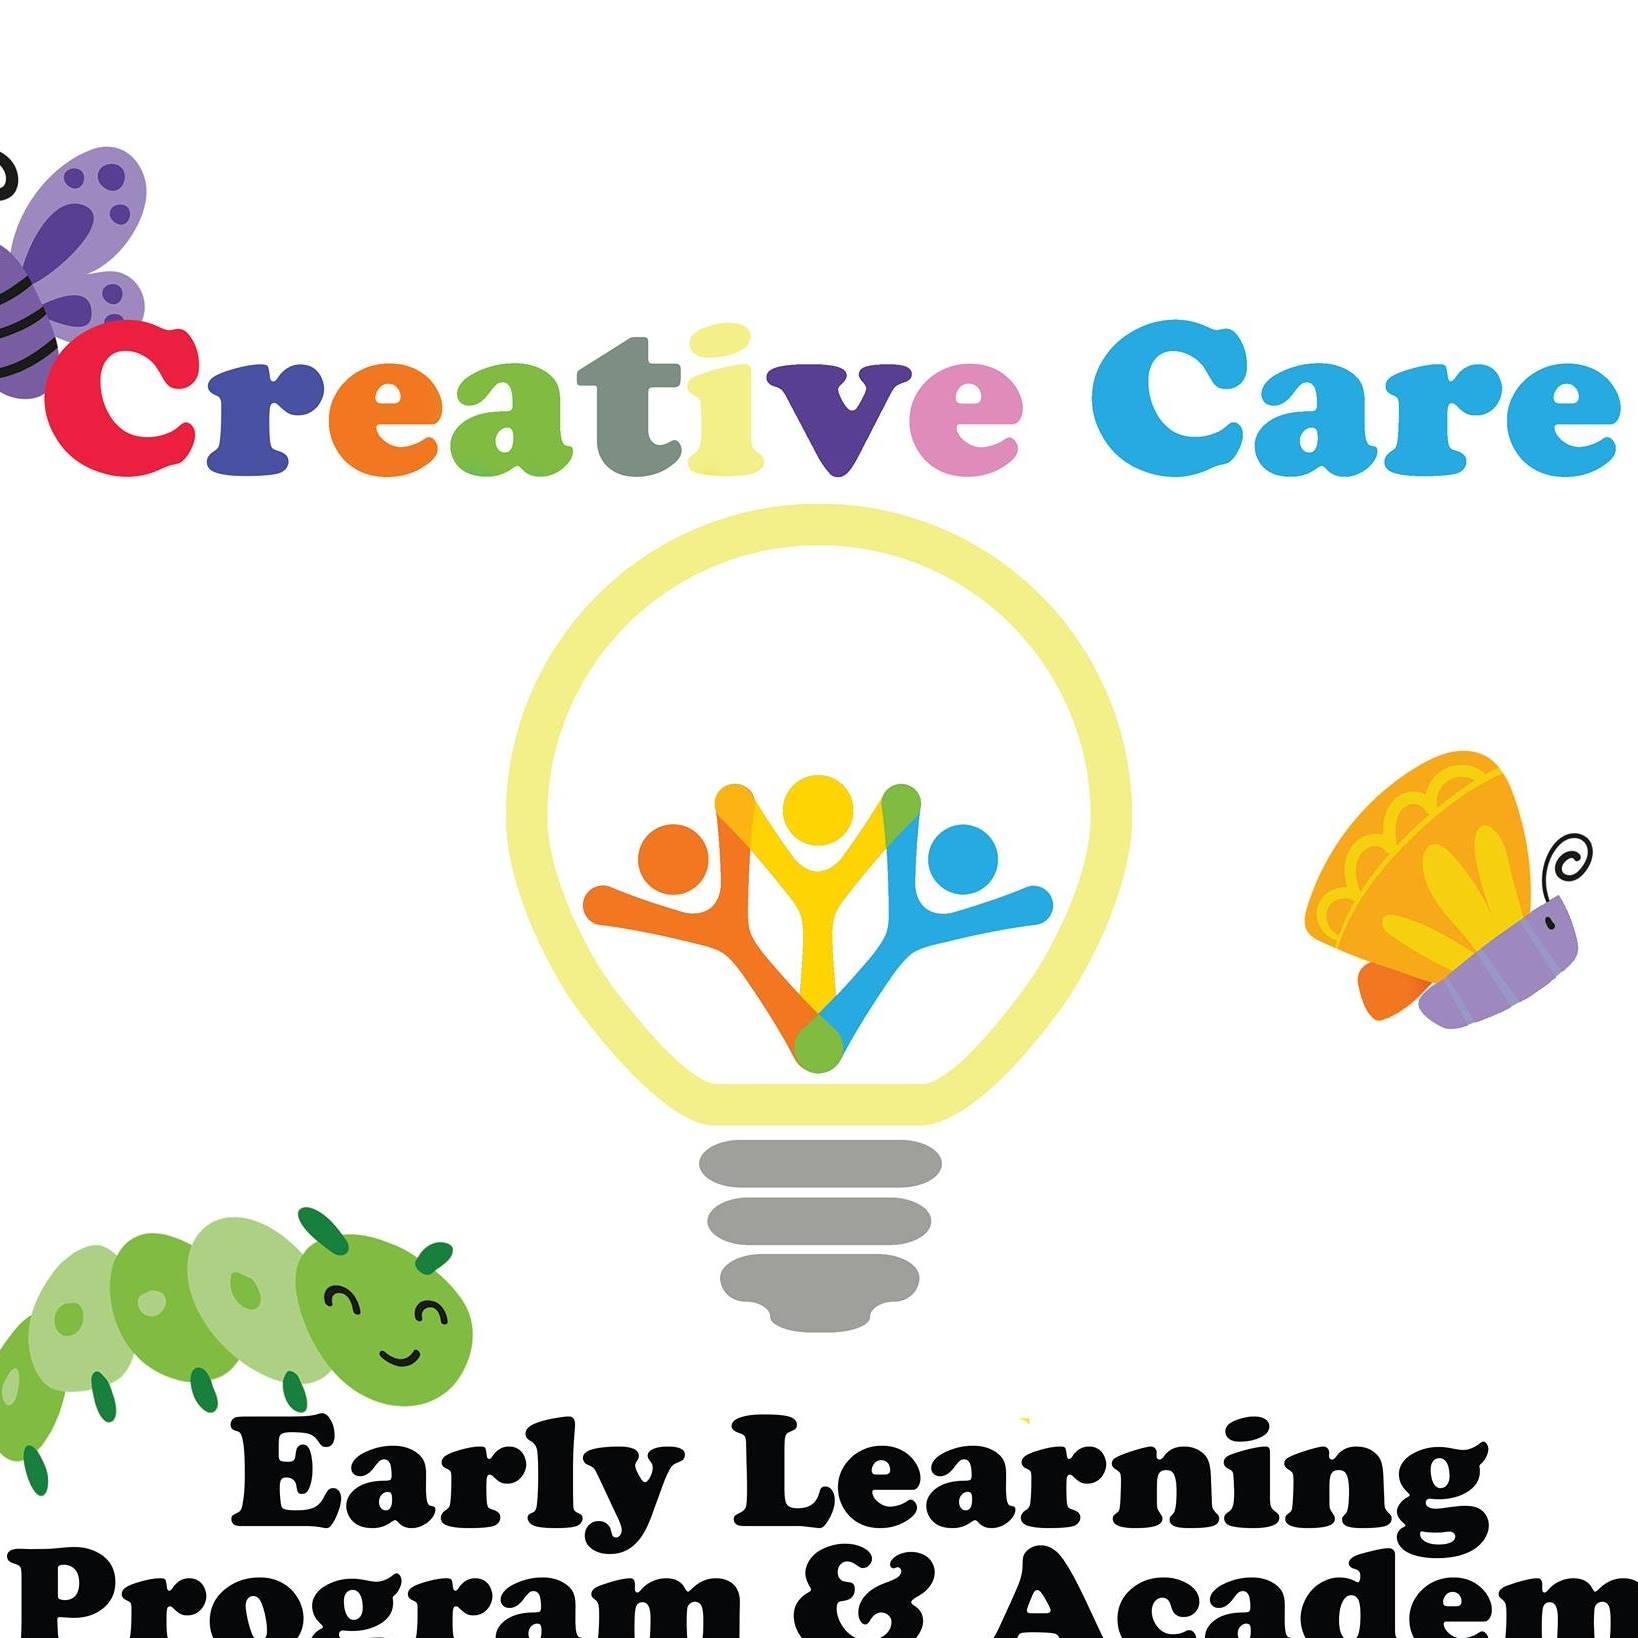 Creative Care Early Learning Academy